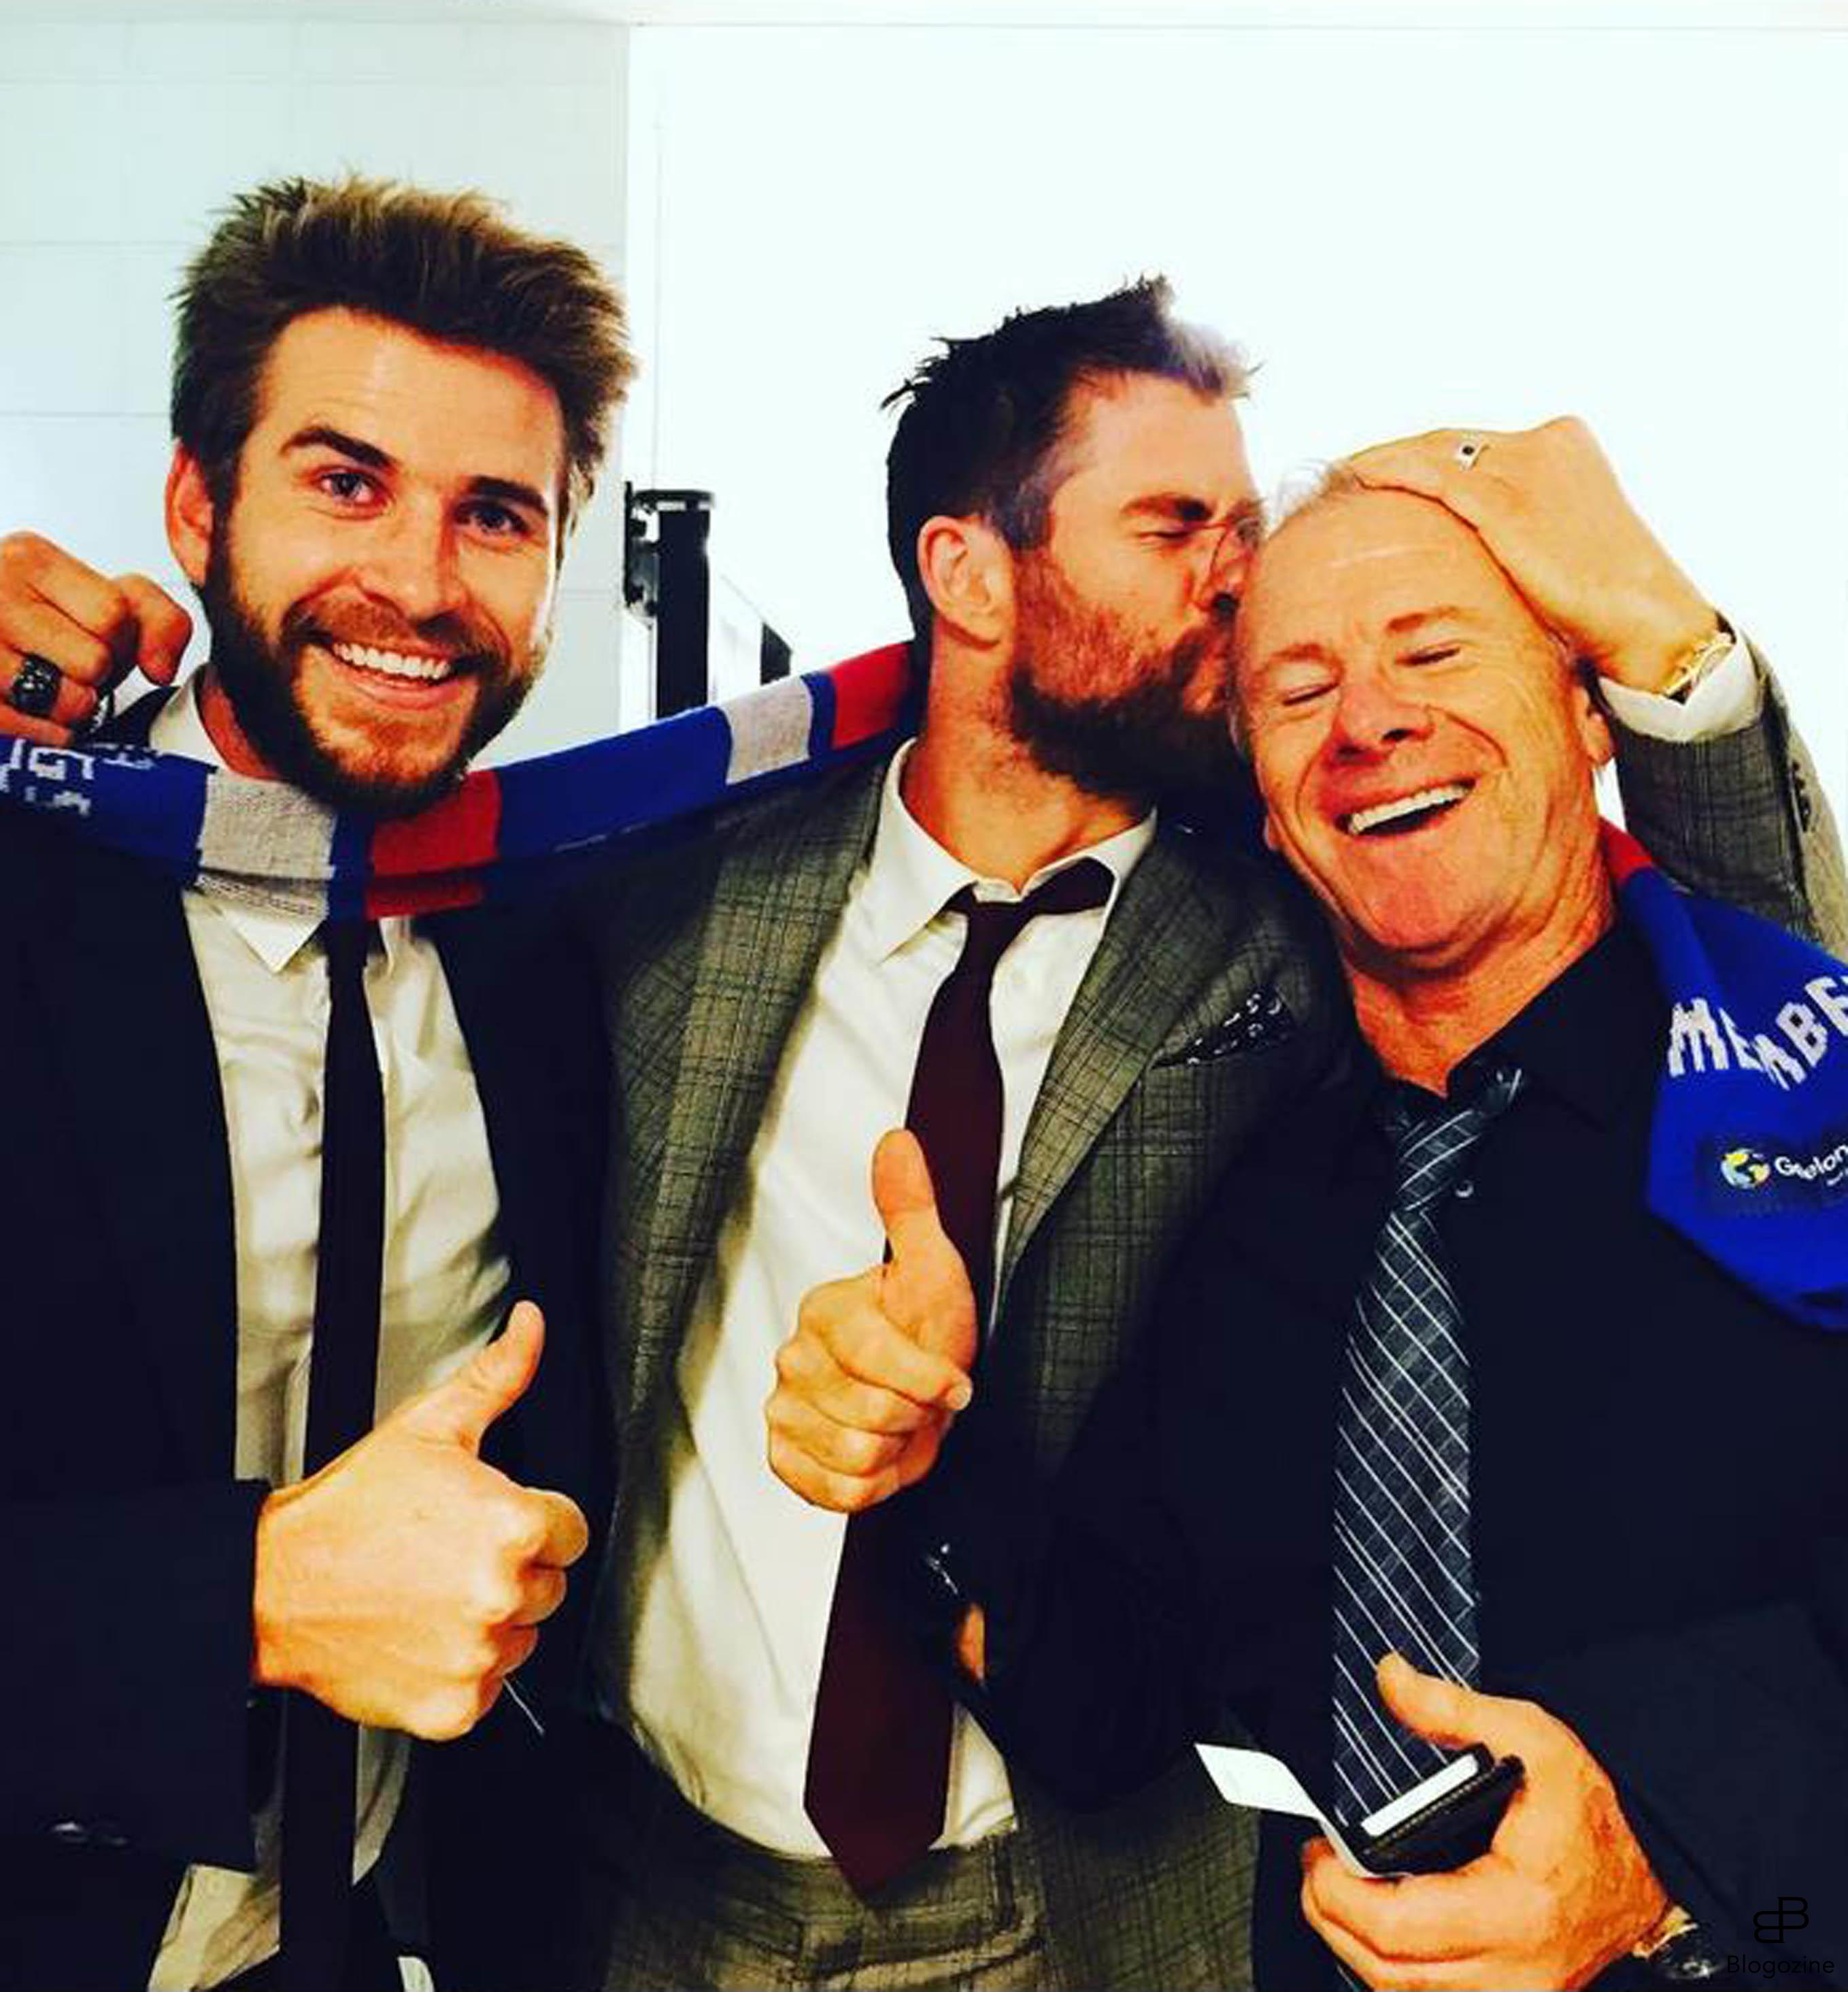 6268797 29-9-2016 Celebrity Selfies Pictured: Chris and Liam Hemsworth PLANET PHOTOS www.planetphotos.co.uk info@planetphotos.co.uk +44 (0)20 8883 1438 DISTR. STELLA PICTURES